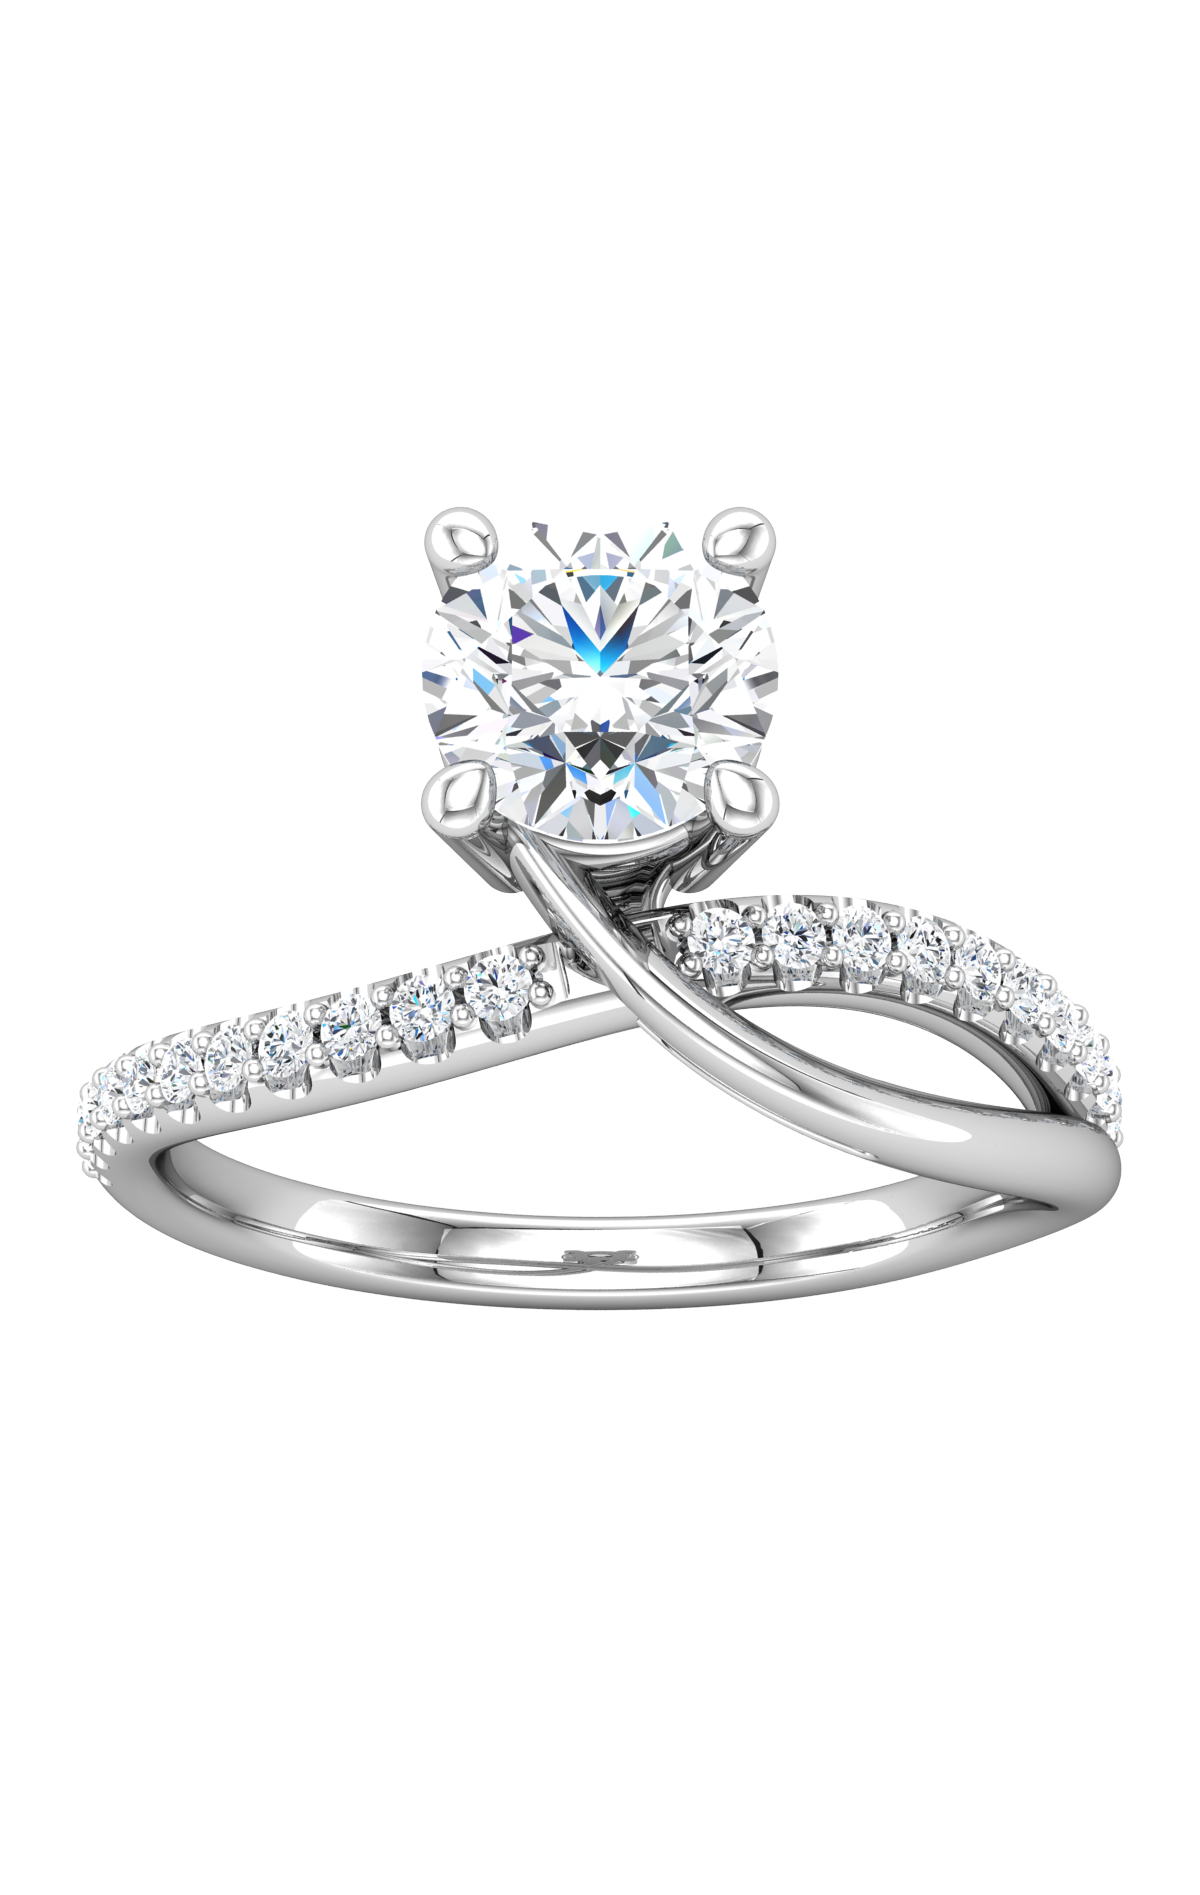 rosa jewelers slide me santa mark jewelery near jewelry allen jewellery fashion store engagement rings allenmark